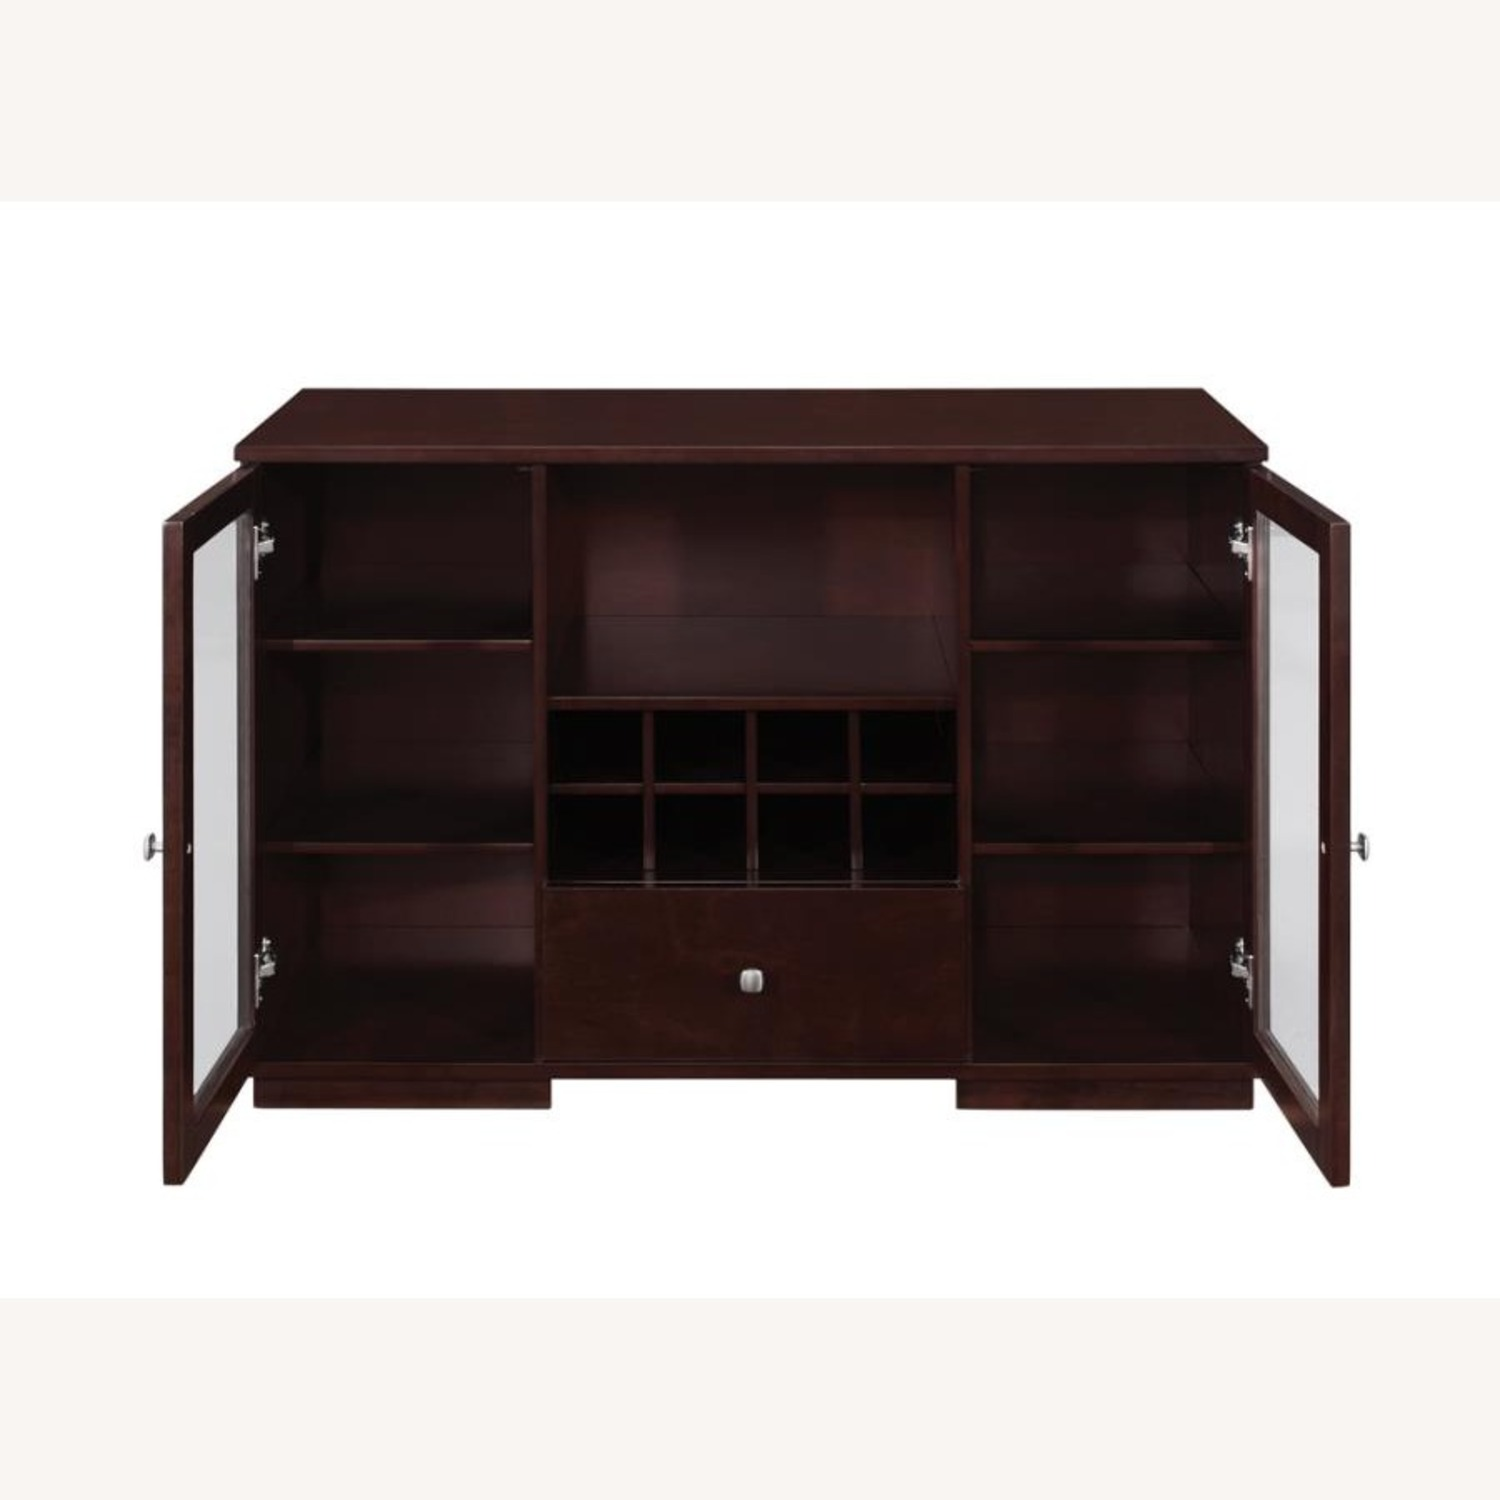 Server In Cappuccino Finish W/ Built-In Wine Rack - image-1